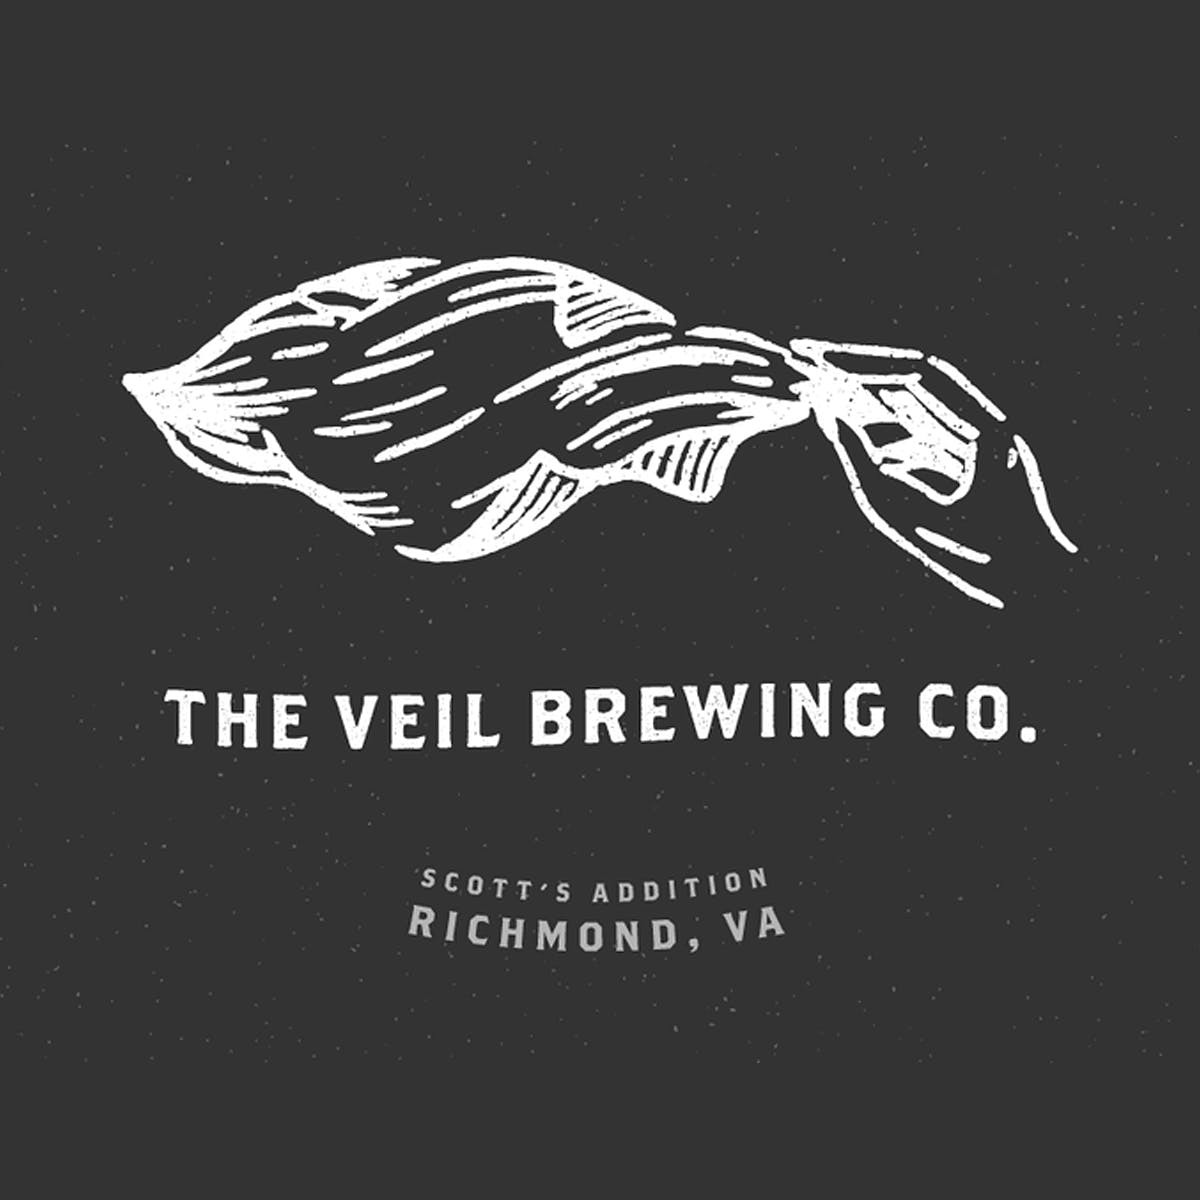 The Veil Brewing Co